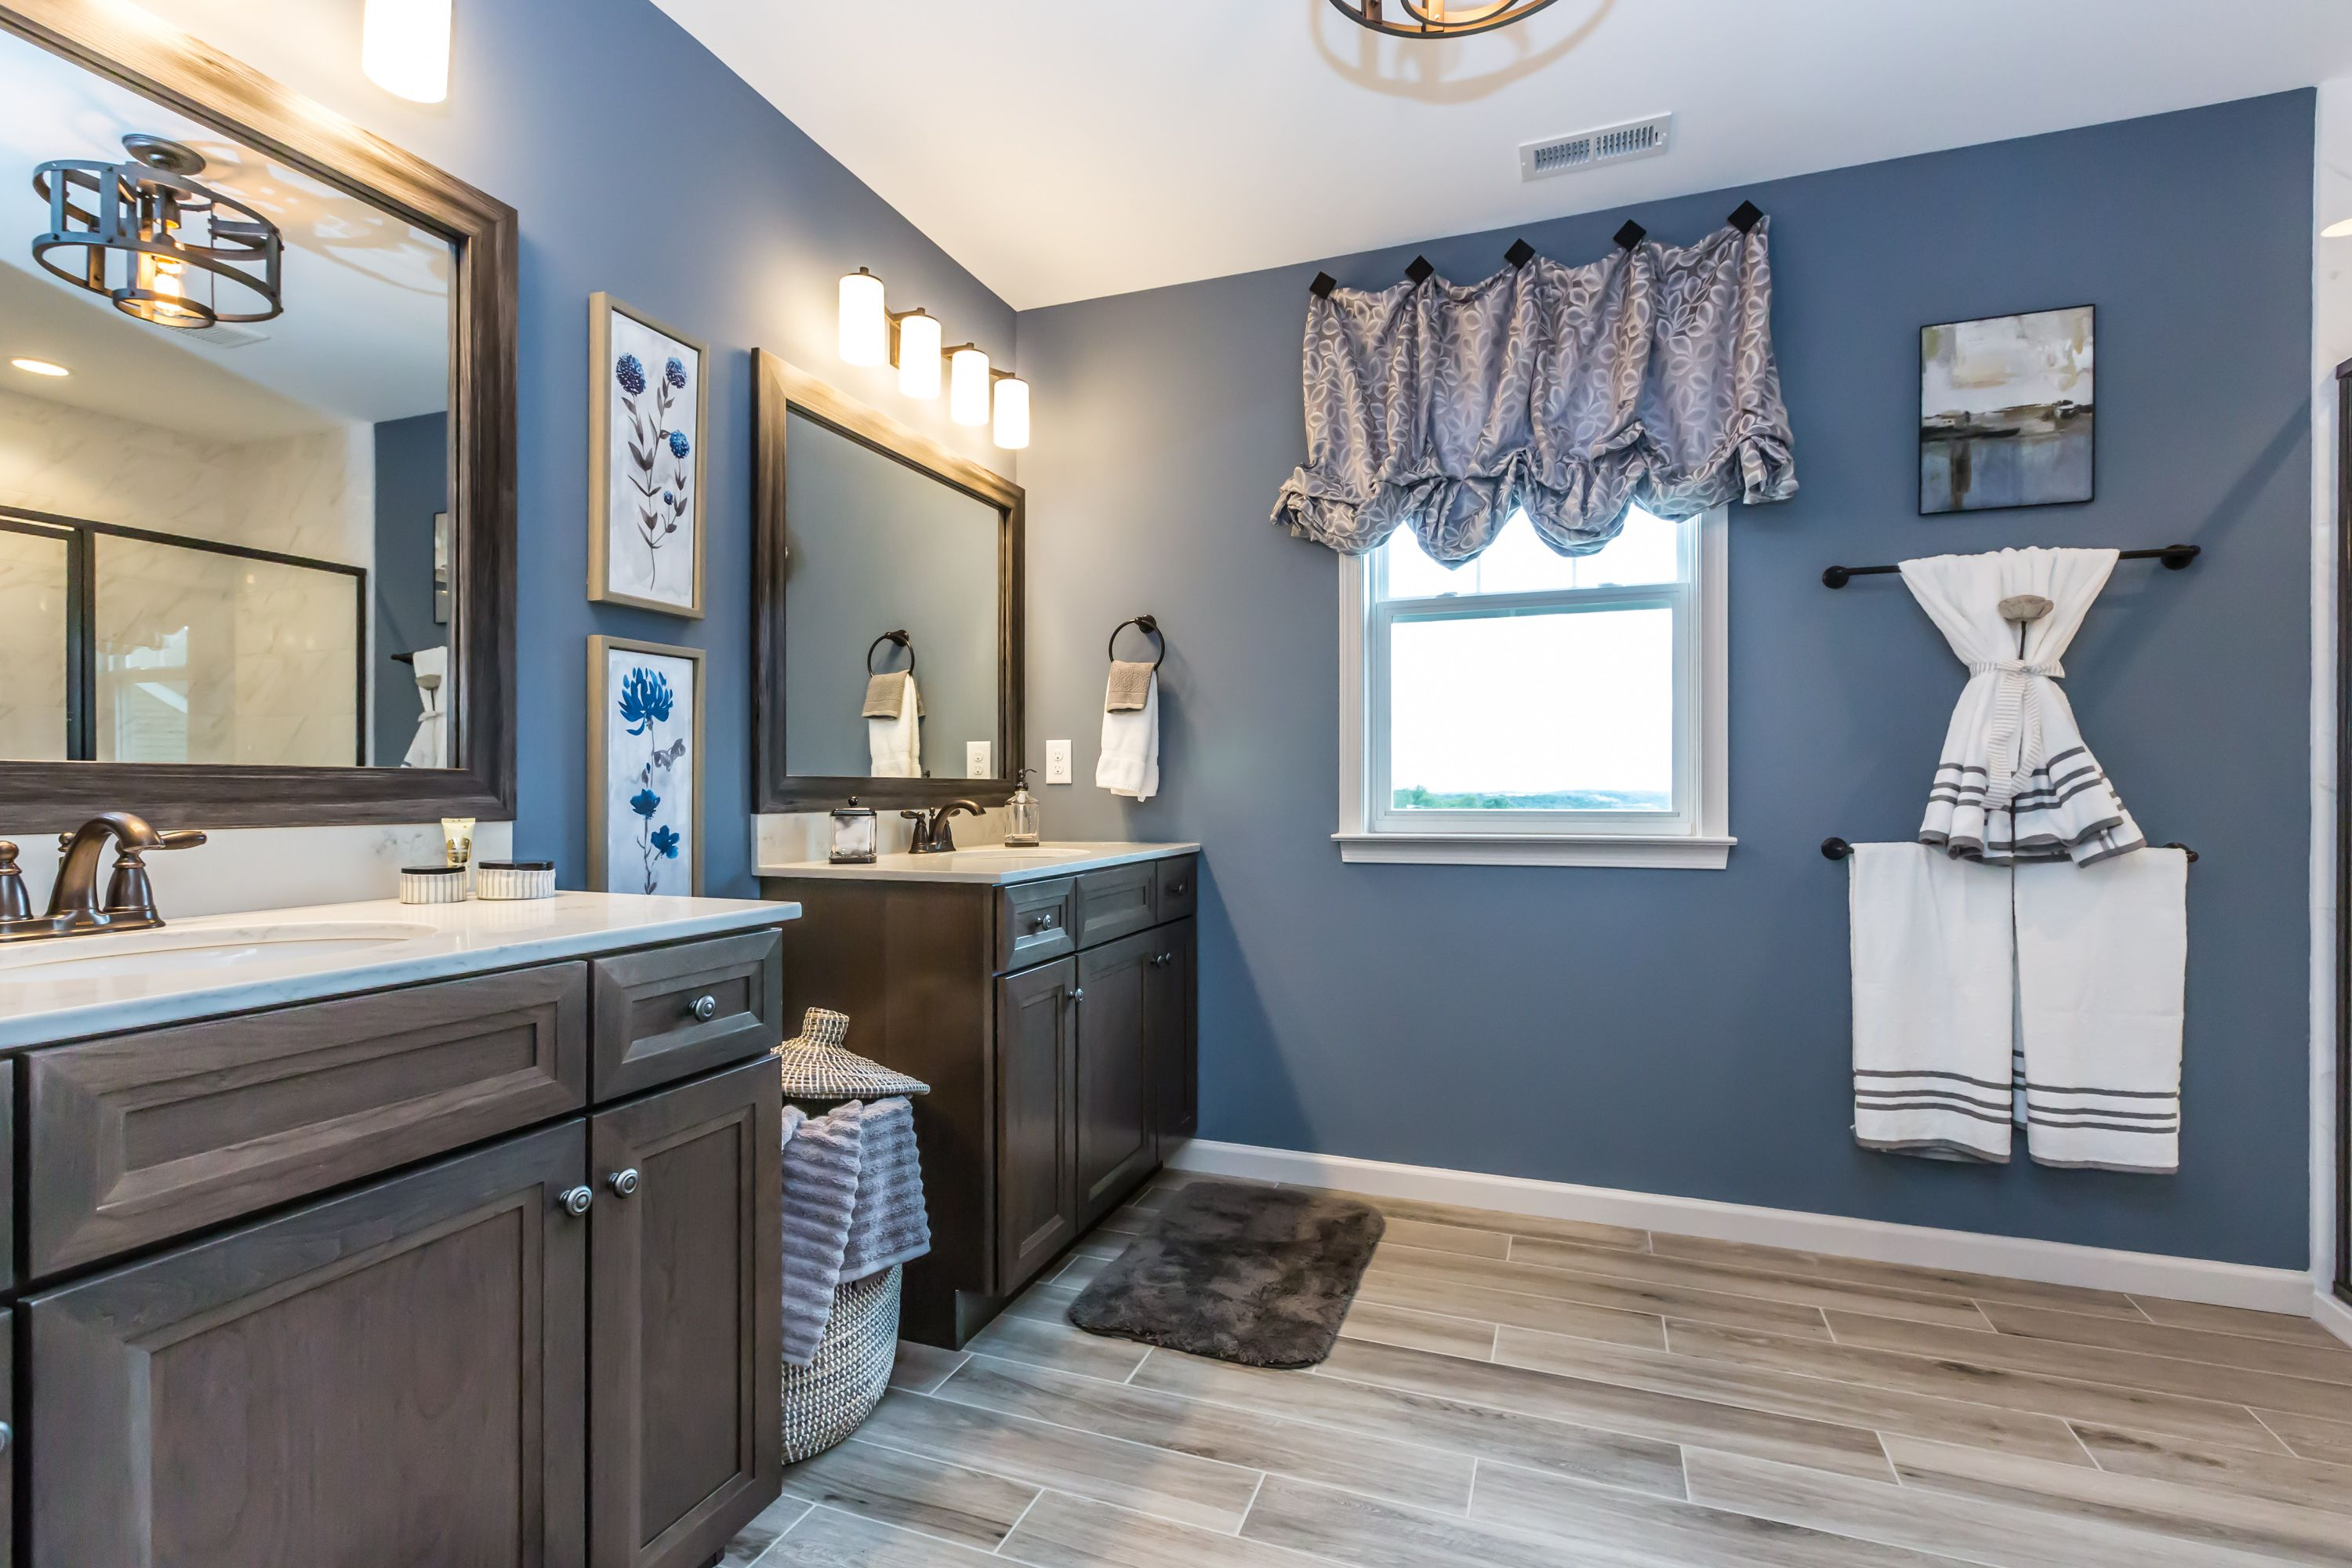 Bathroom featured in the Malvern By Rouse Chamberlin Homes in Philadelphia, PA